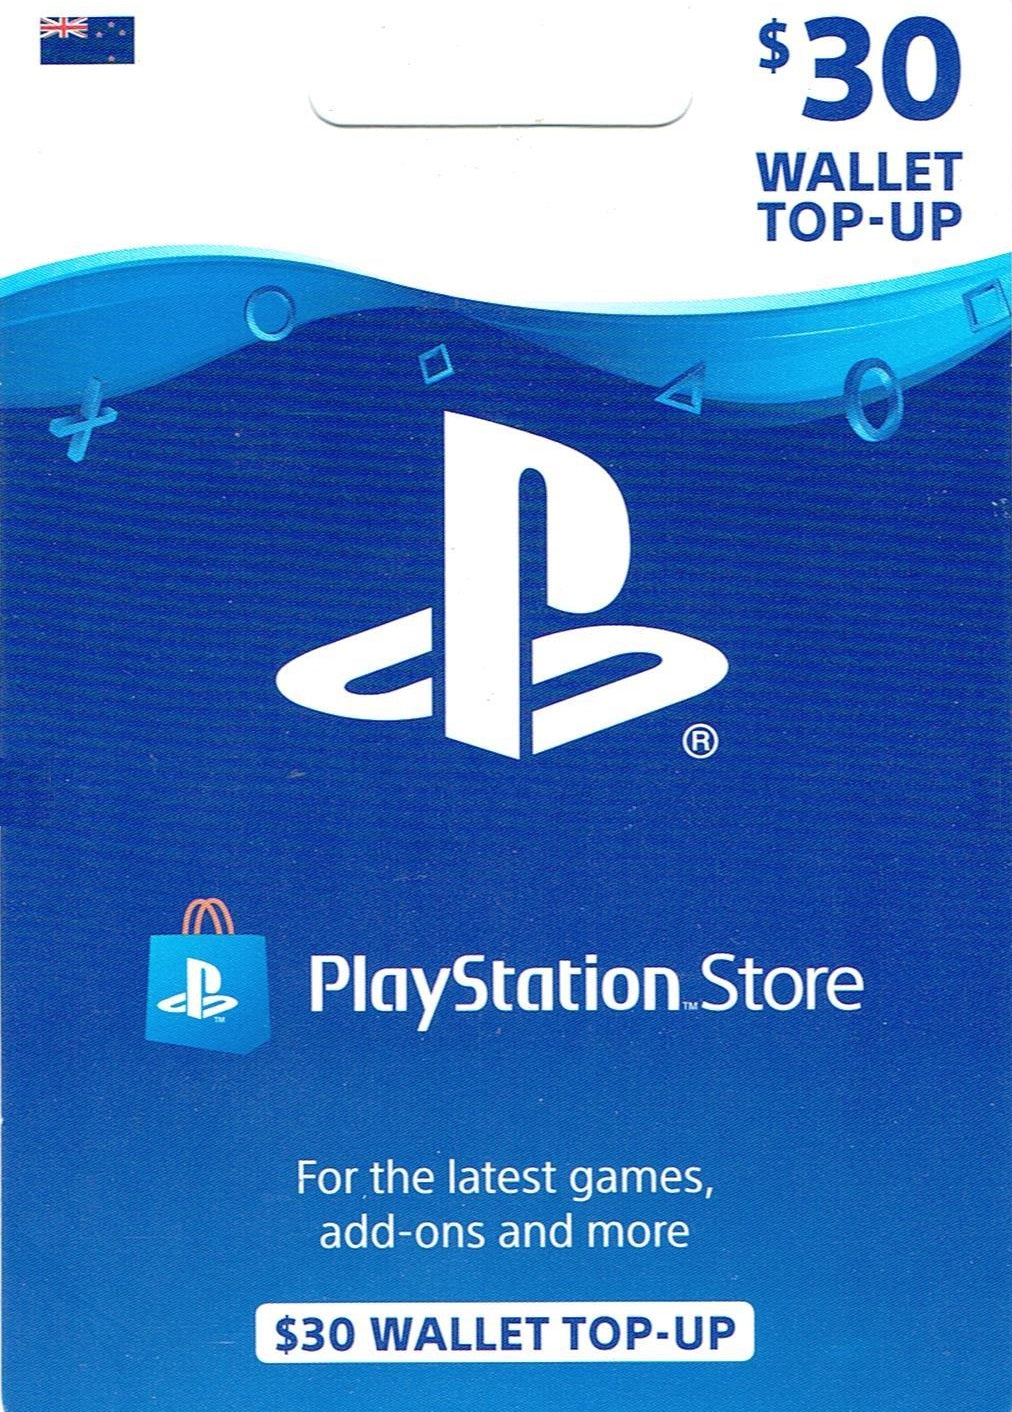 Playstation Store $30 Top Up | GgStore.co.nz